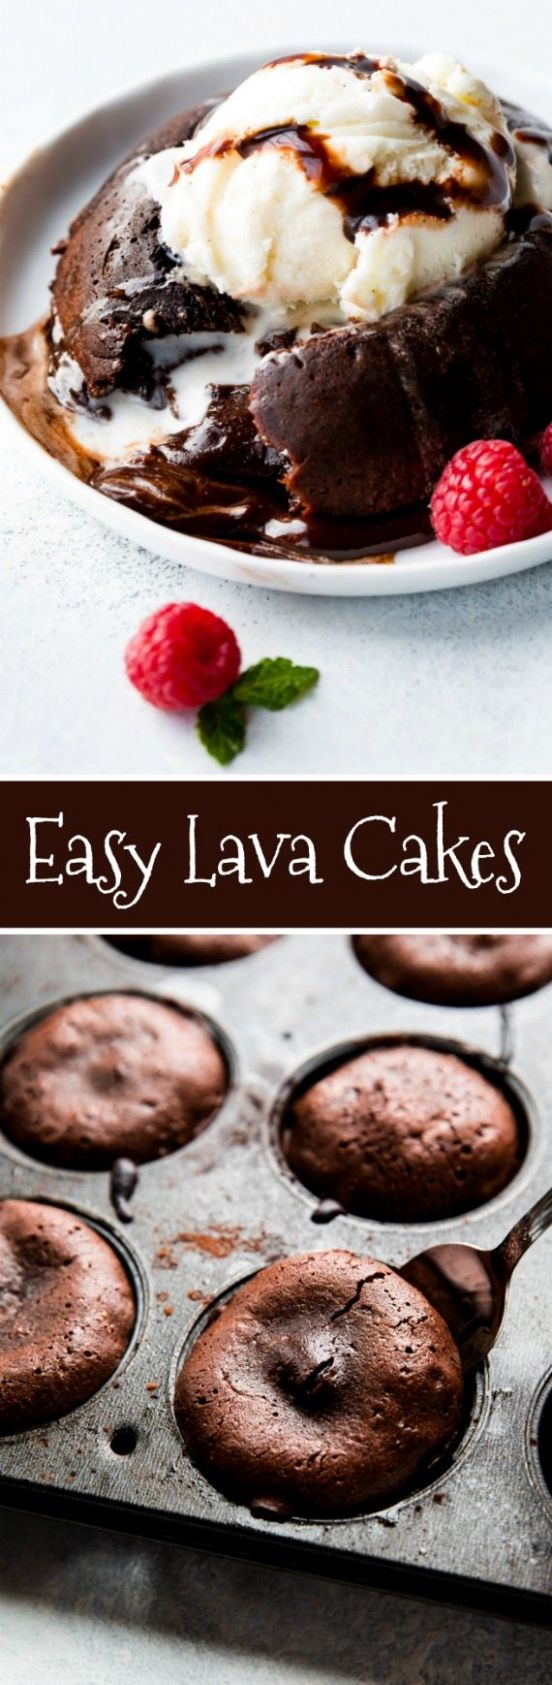 How to Make Chocolate Lava Cakes | Sally's Baking Addiction